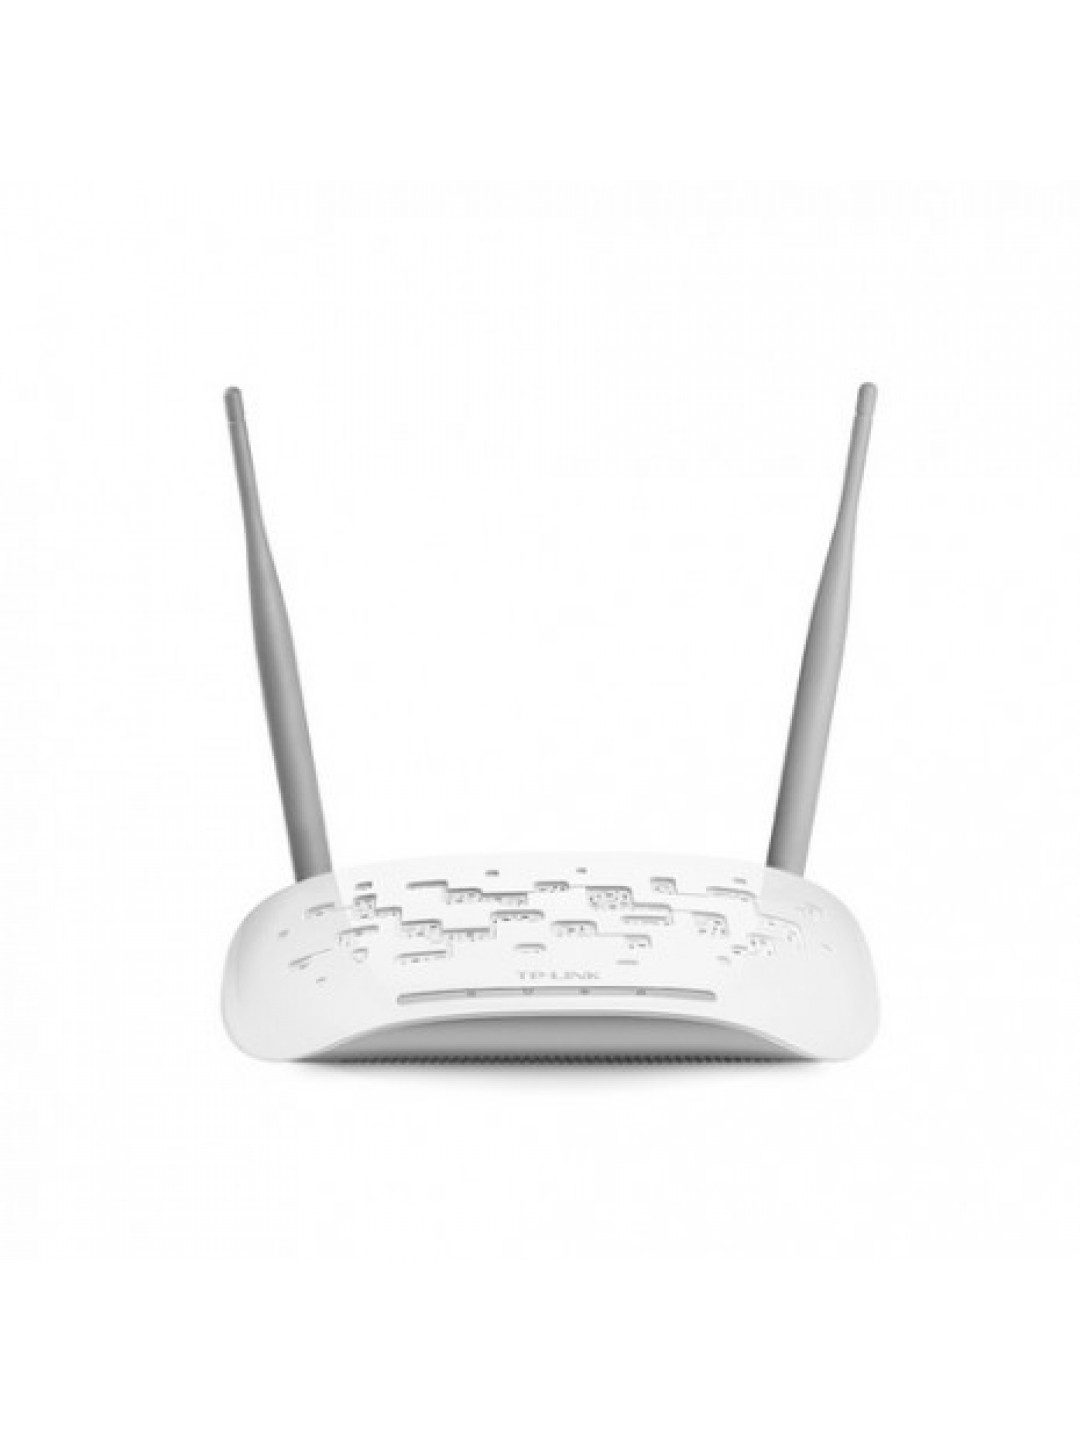 TL-WA801ND 300MBPS WIRELESS ACCESS POINT